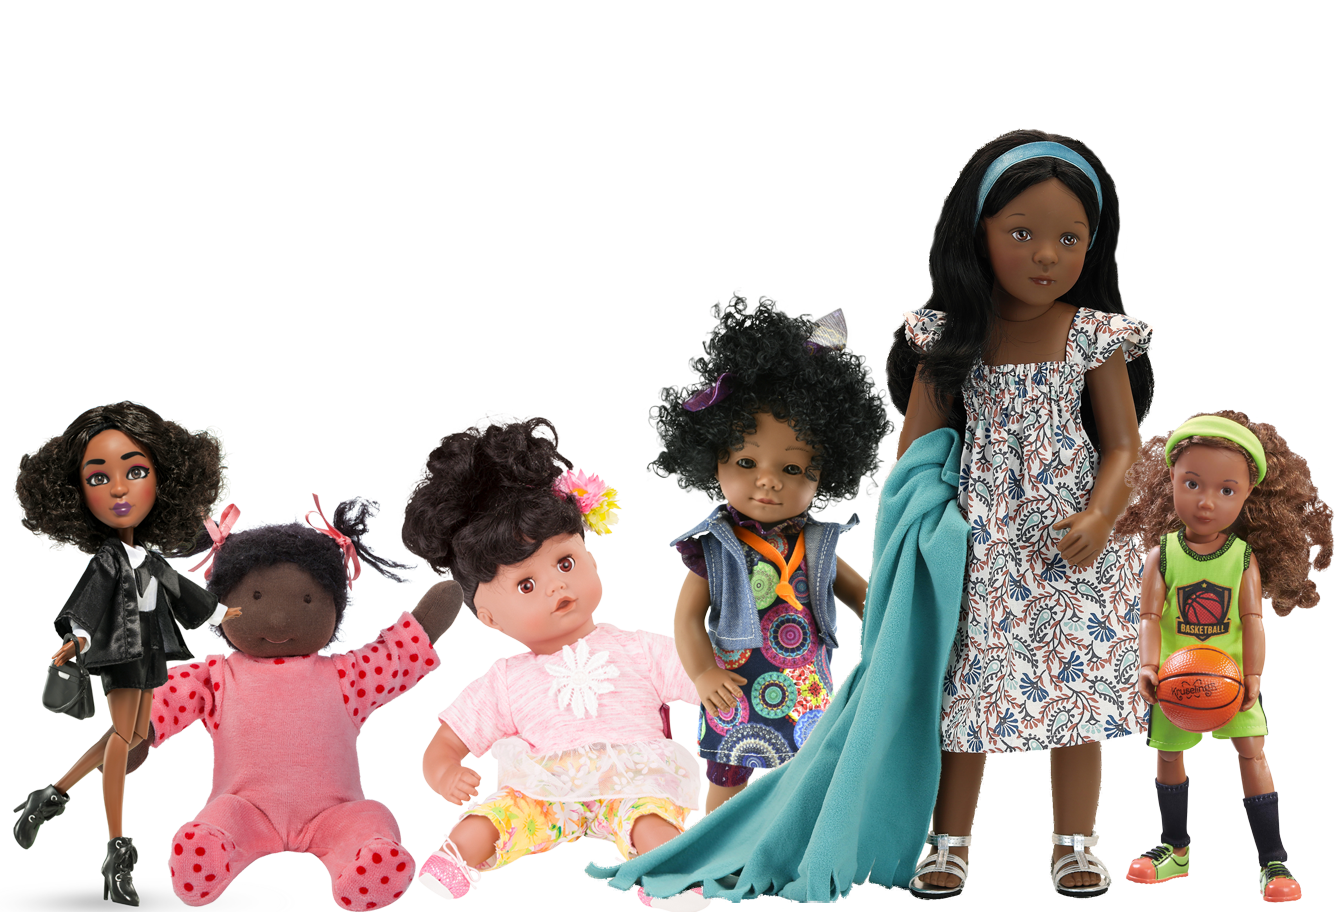 Black/Brown Dolls